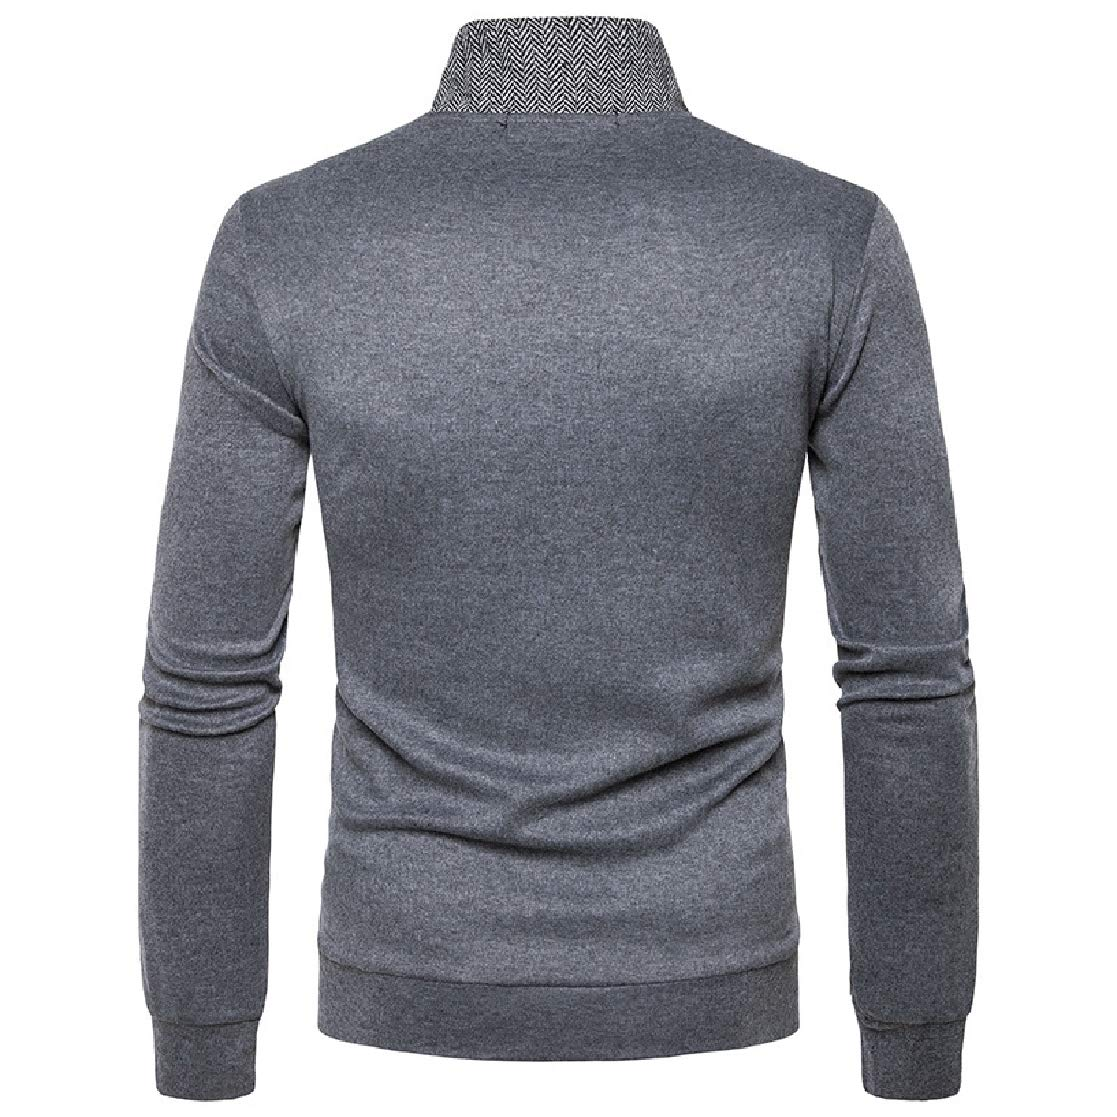 YUNY Mens Stand Collar Button Up Stitch Comfort Pocket Business Knitwear Dark Grey XL